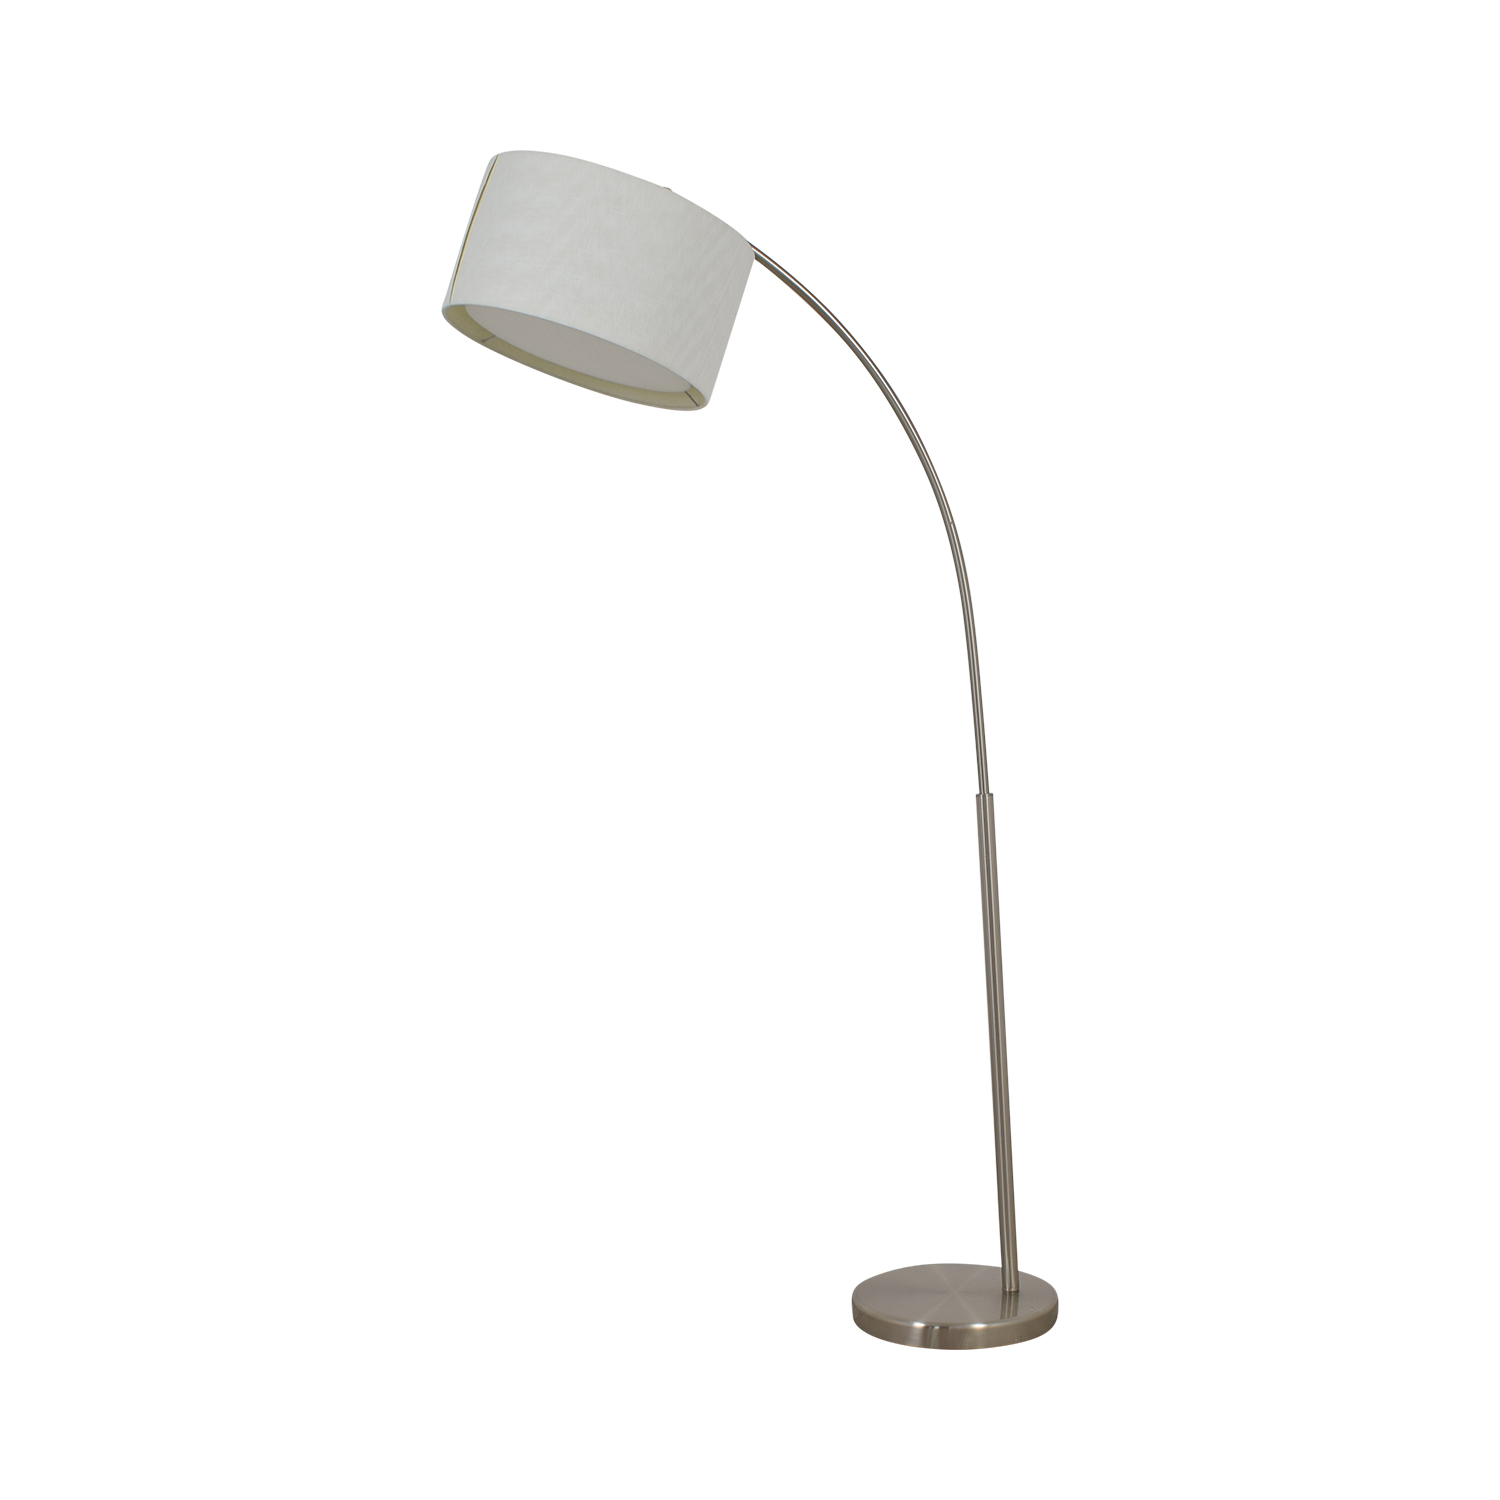 CB2 CB2 Arched Floor Lamp used